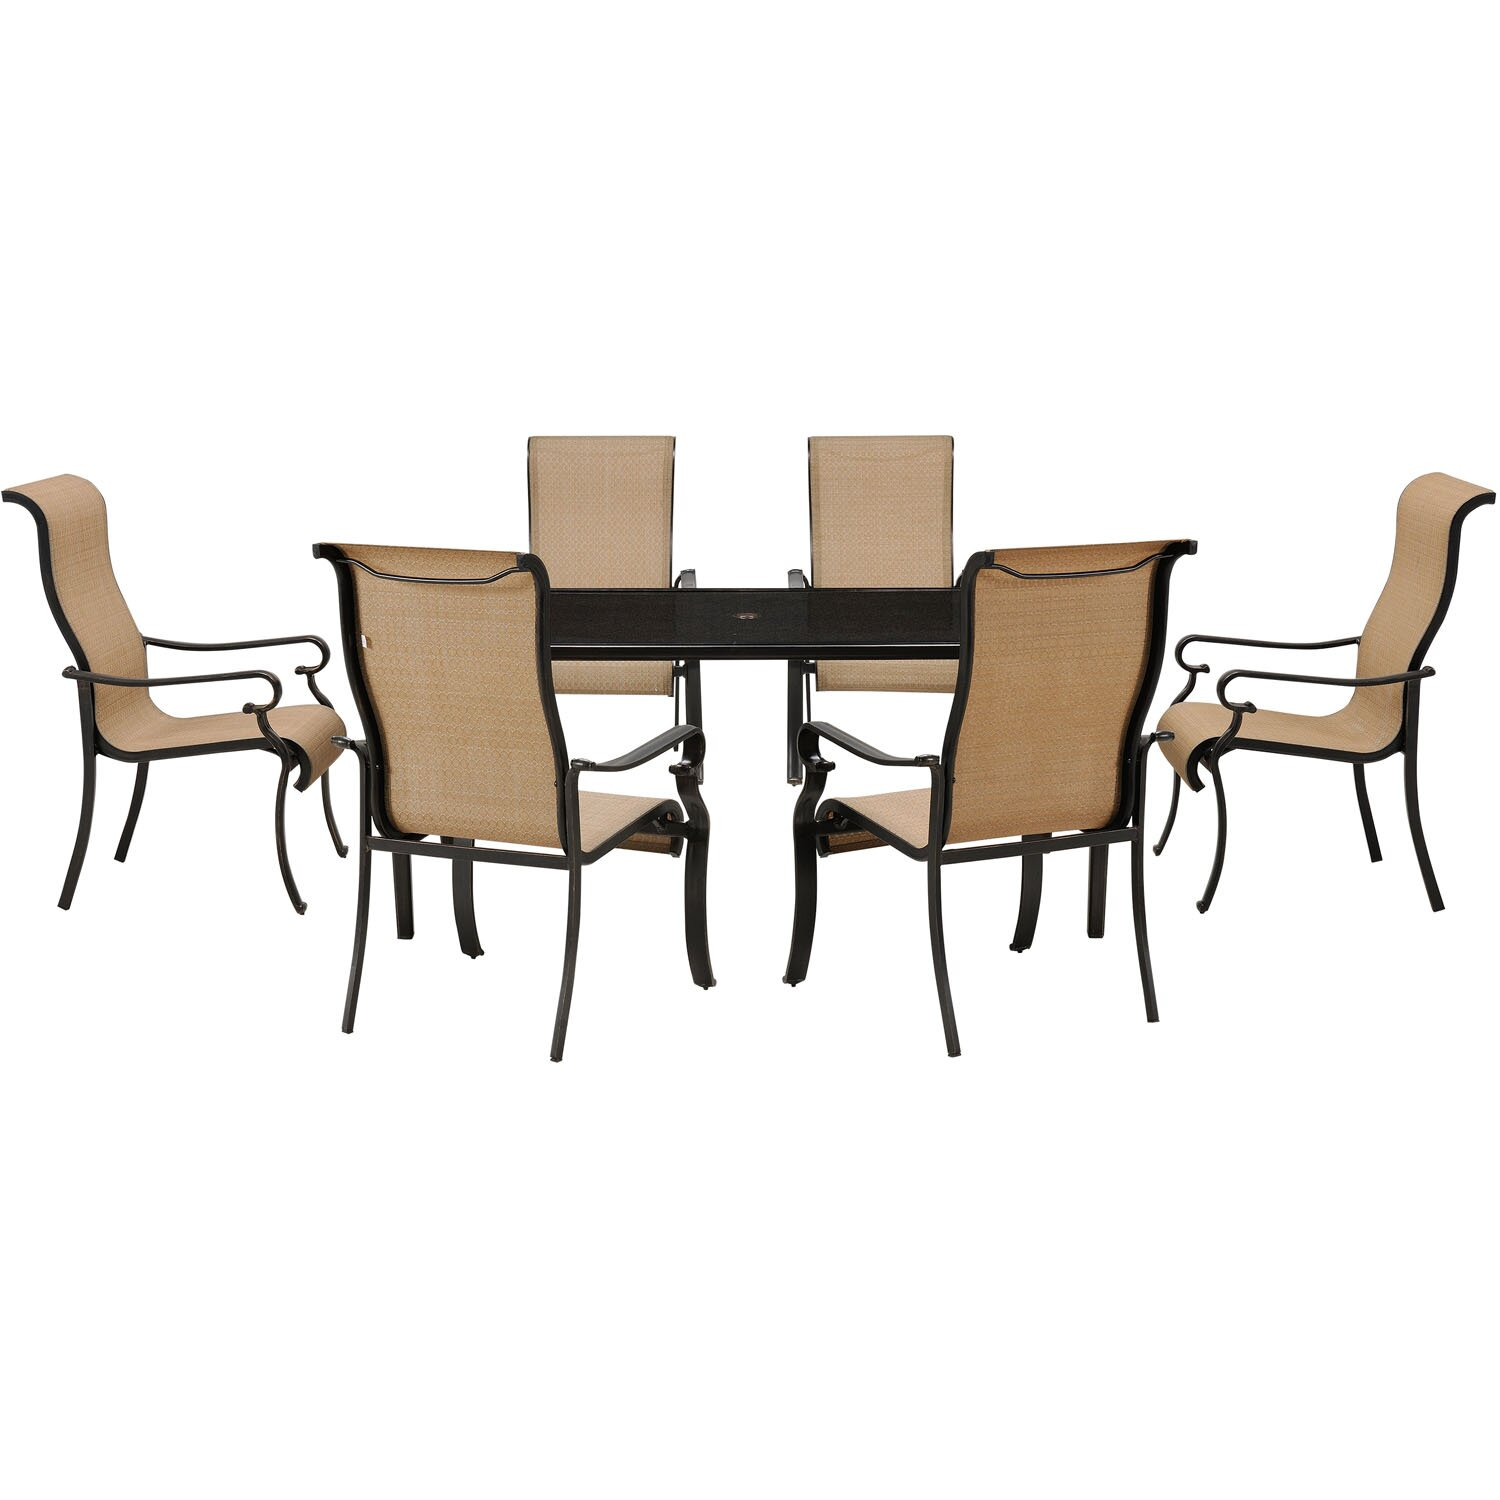 Hanover brigantine 7 piece dining set reviews wayfair for 7 piece dining set